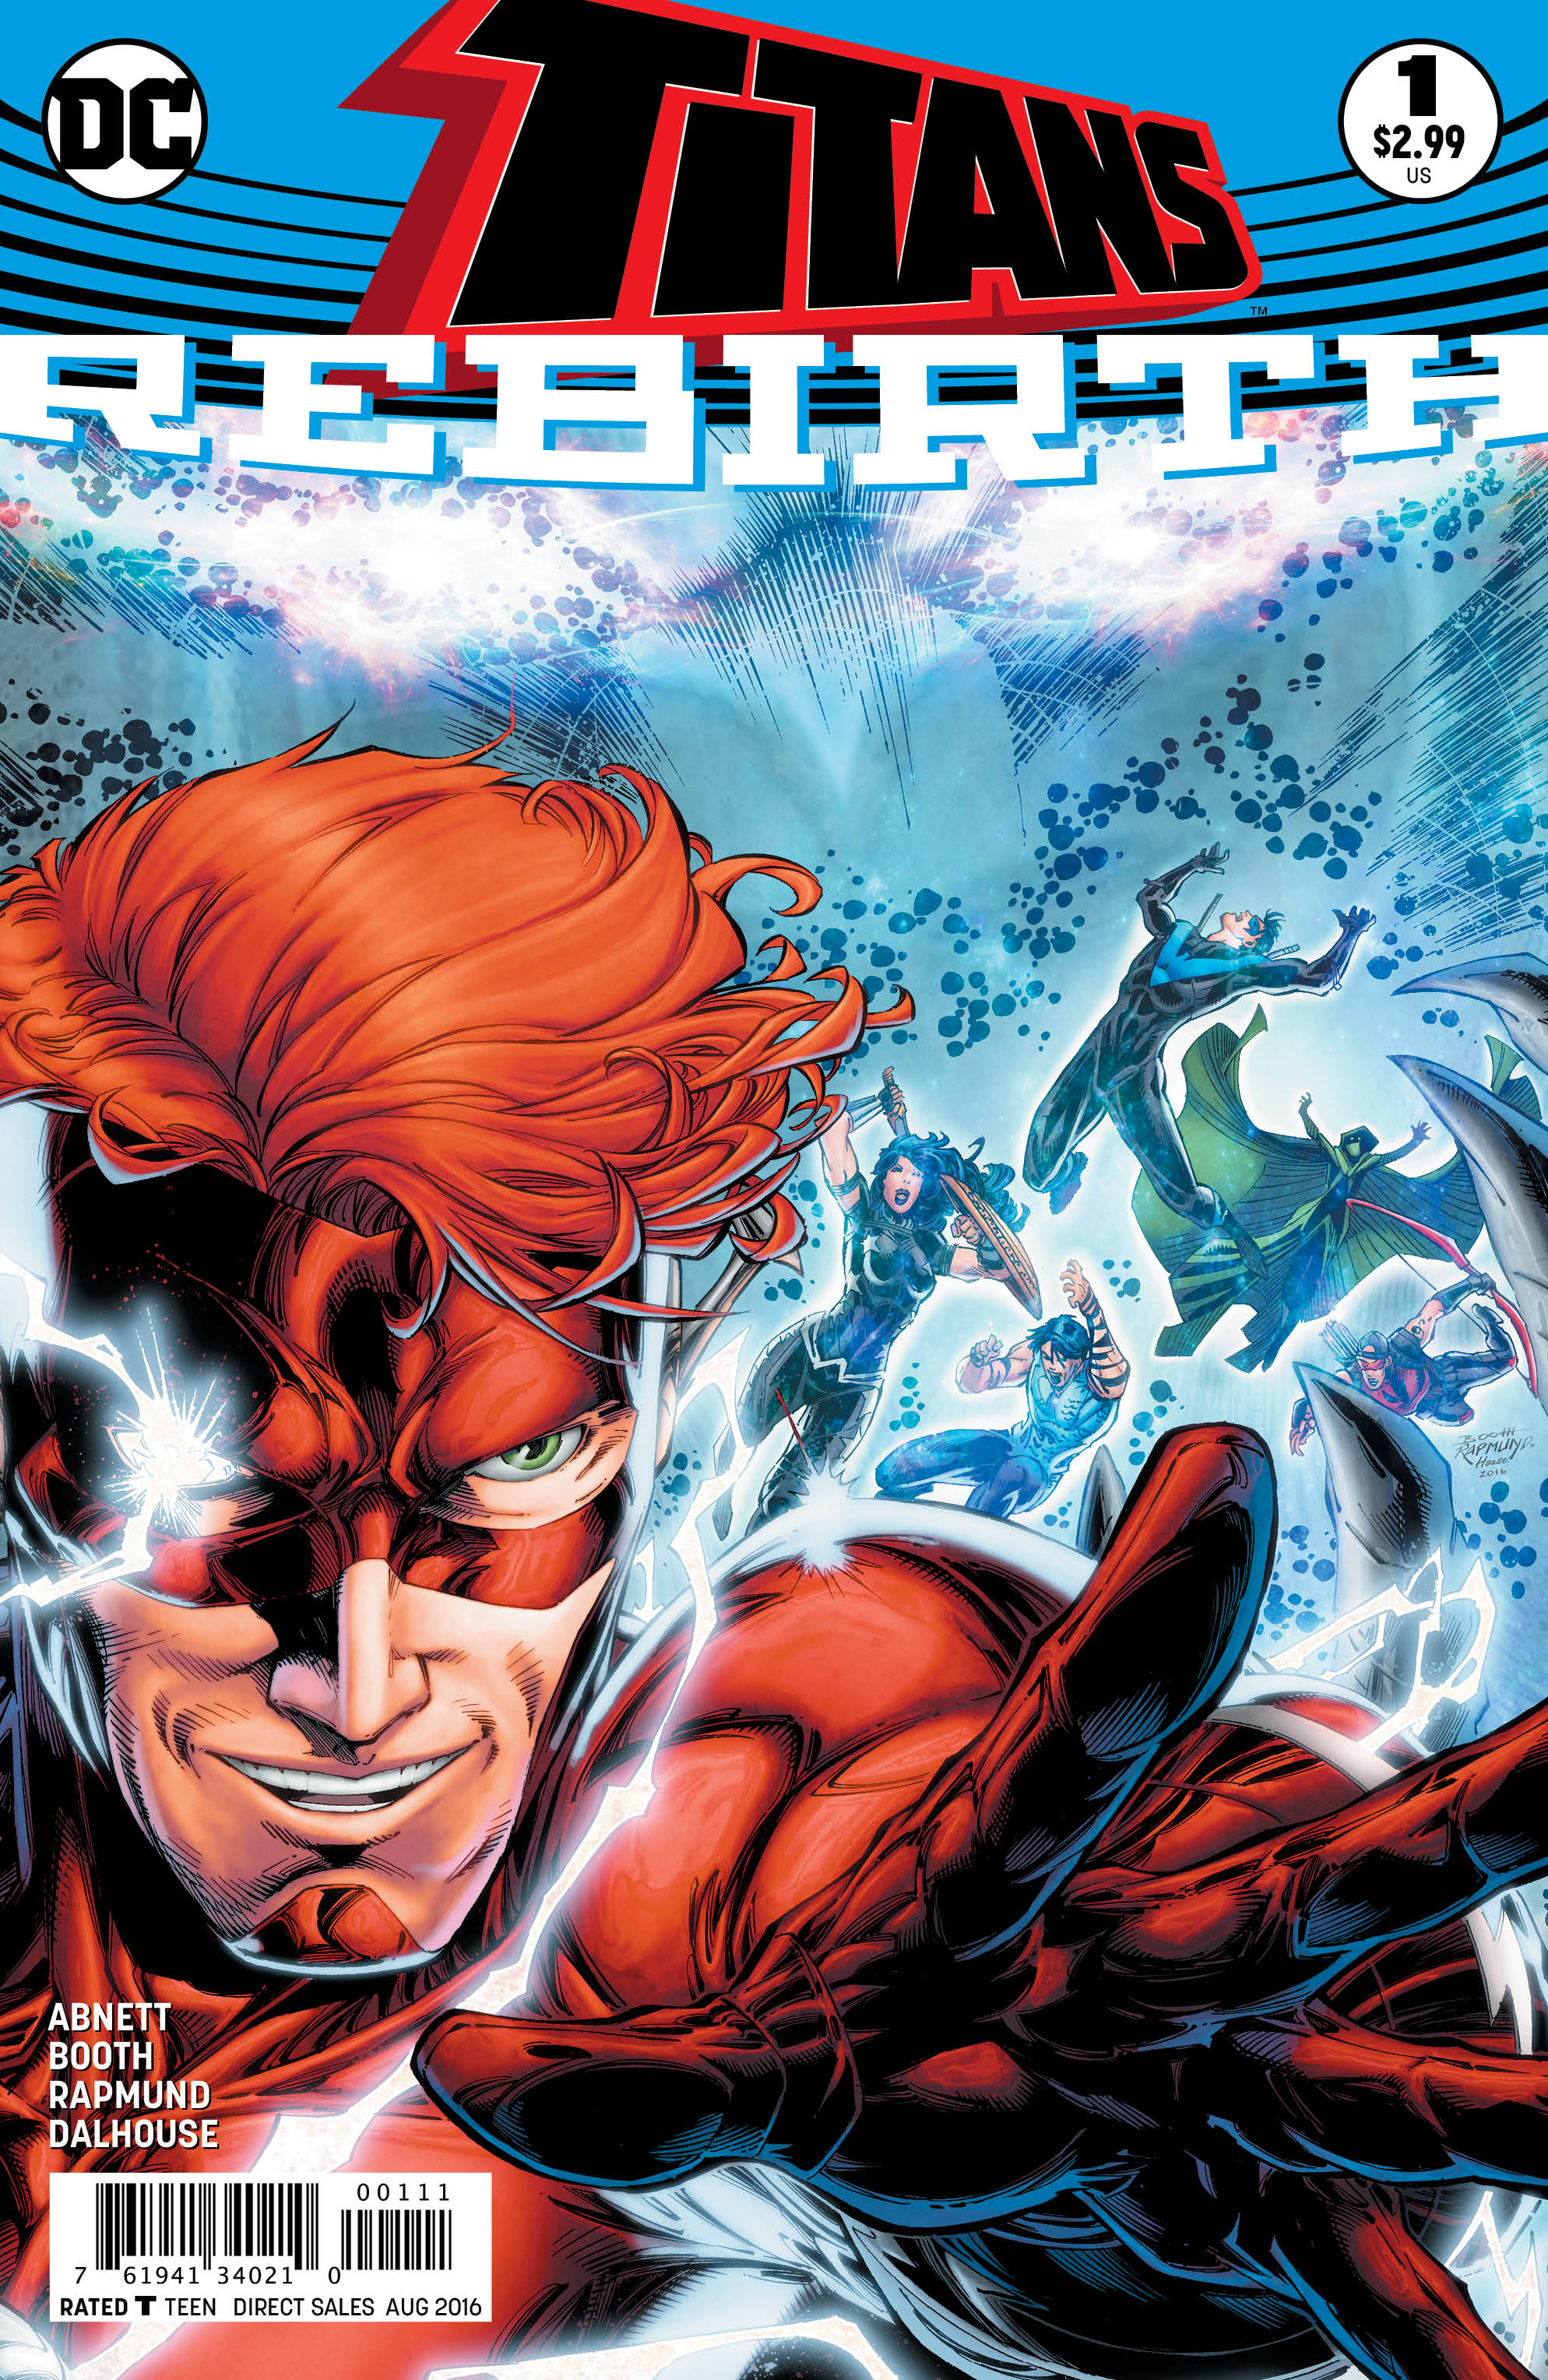 TITANS: REBIRTH #1 cover